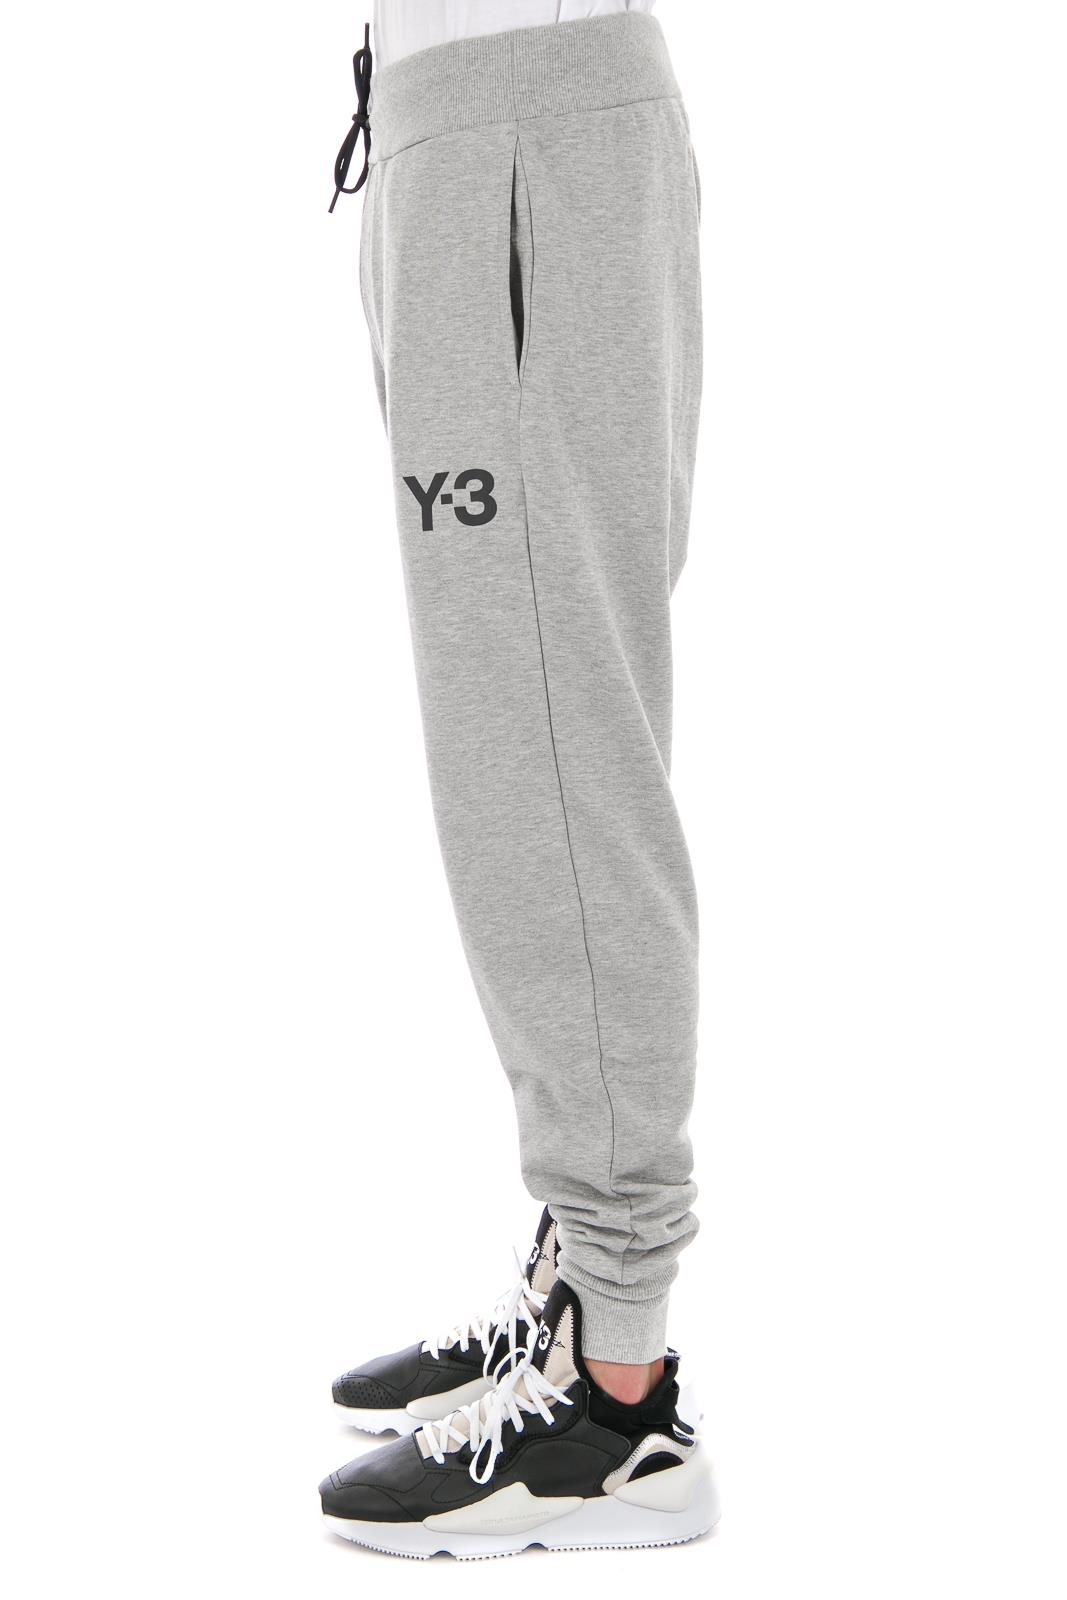 adidas y3 leggings